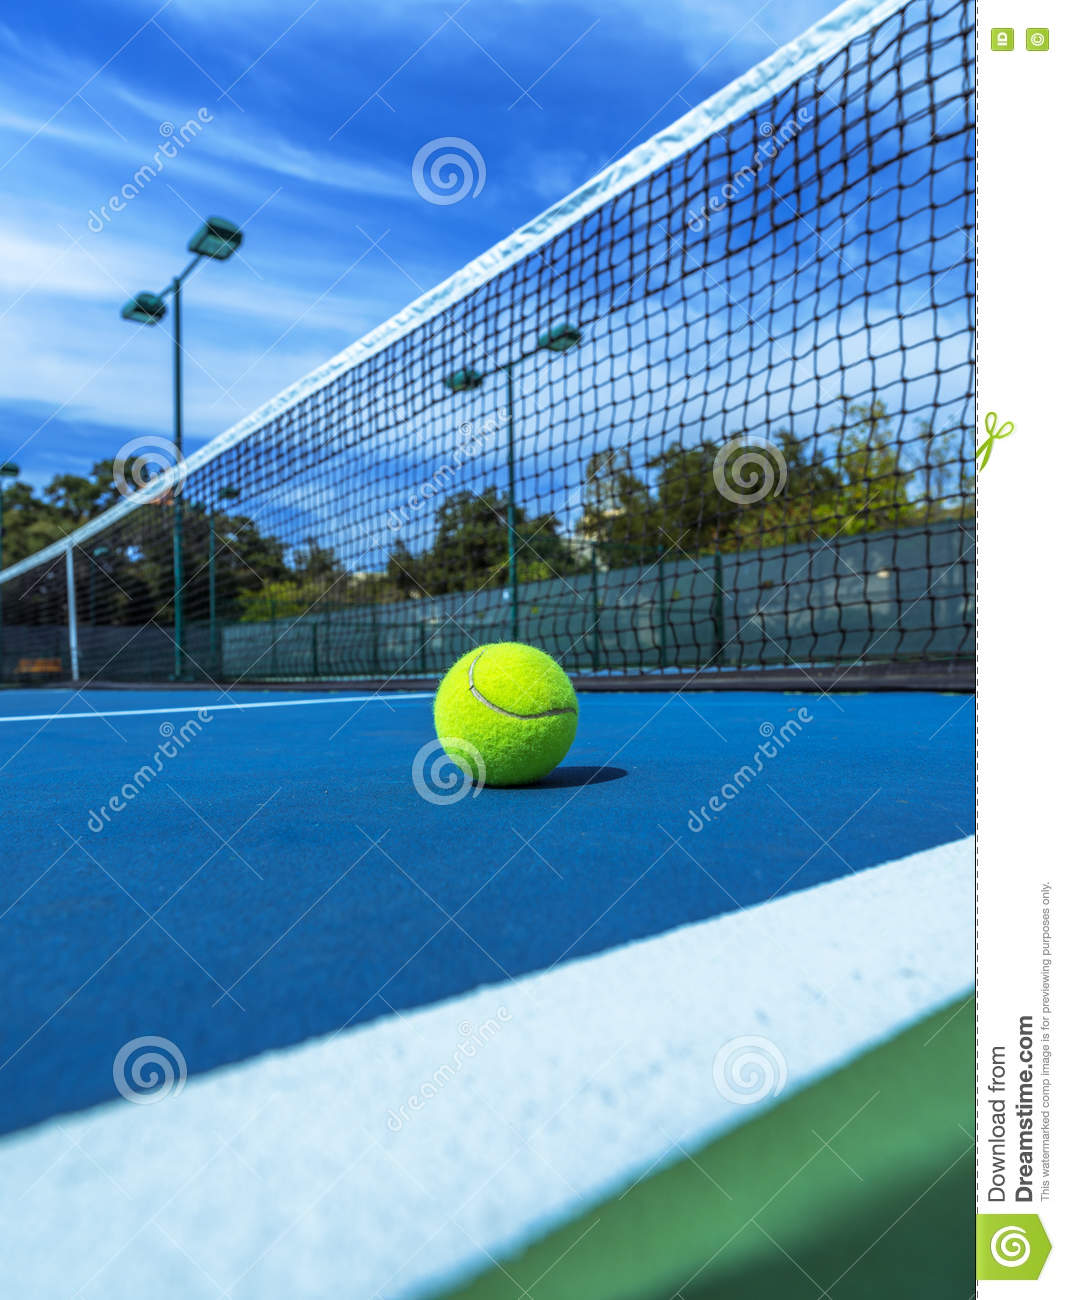 Tennis Ball On Blue Court Doubles Sideline And Net Stock Image